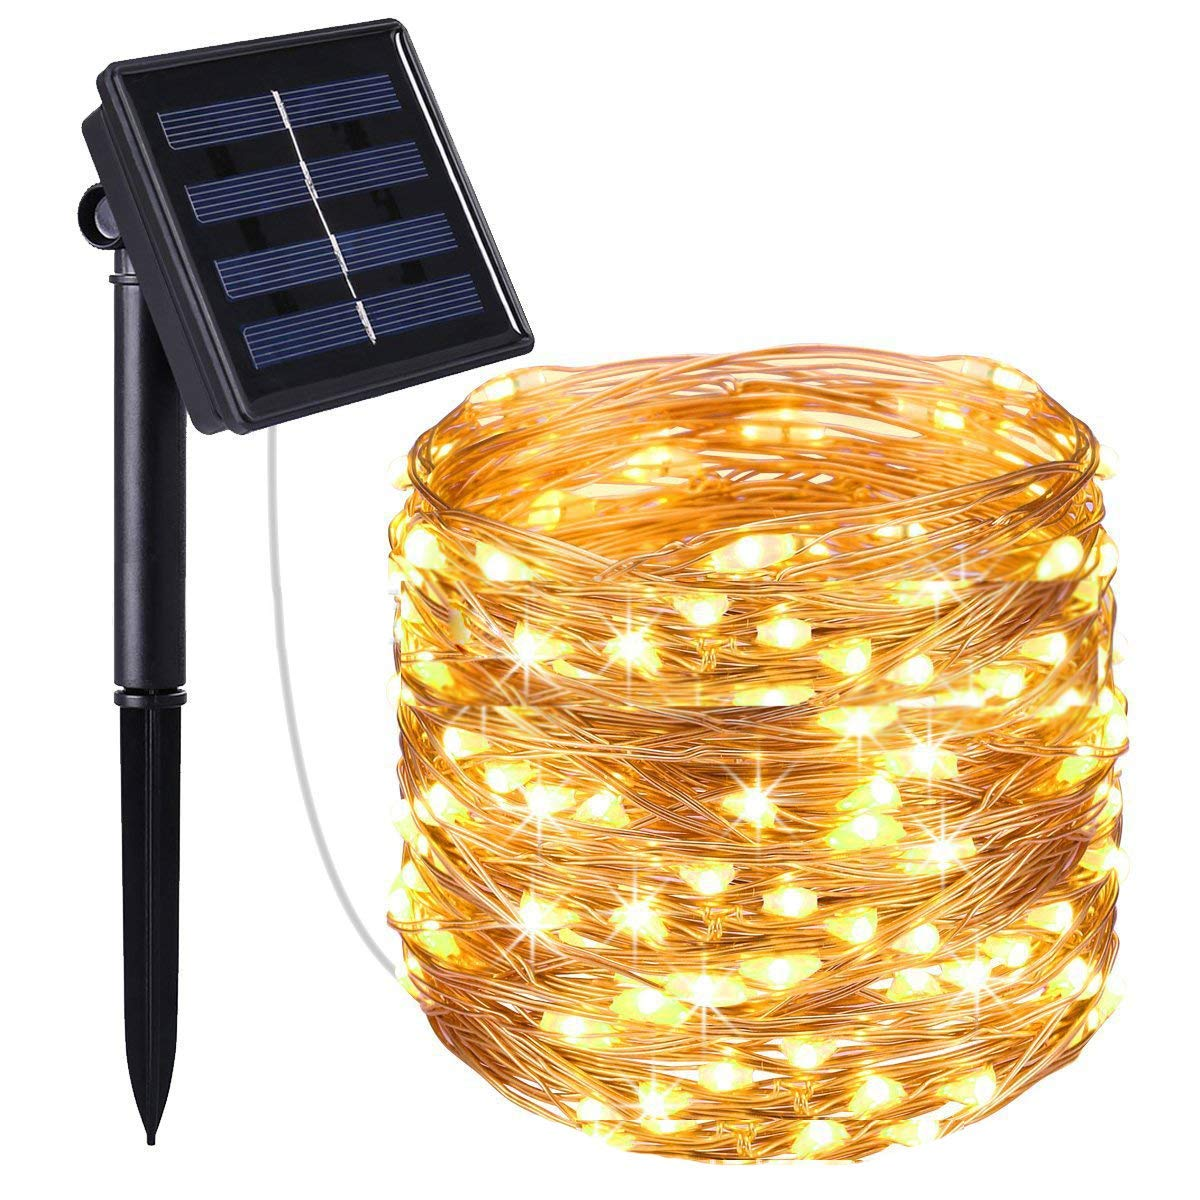 Cheap Led Patio Lights String Find Led Patio Lights String